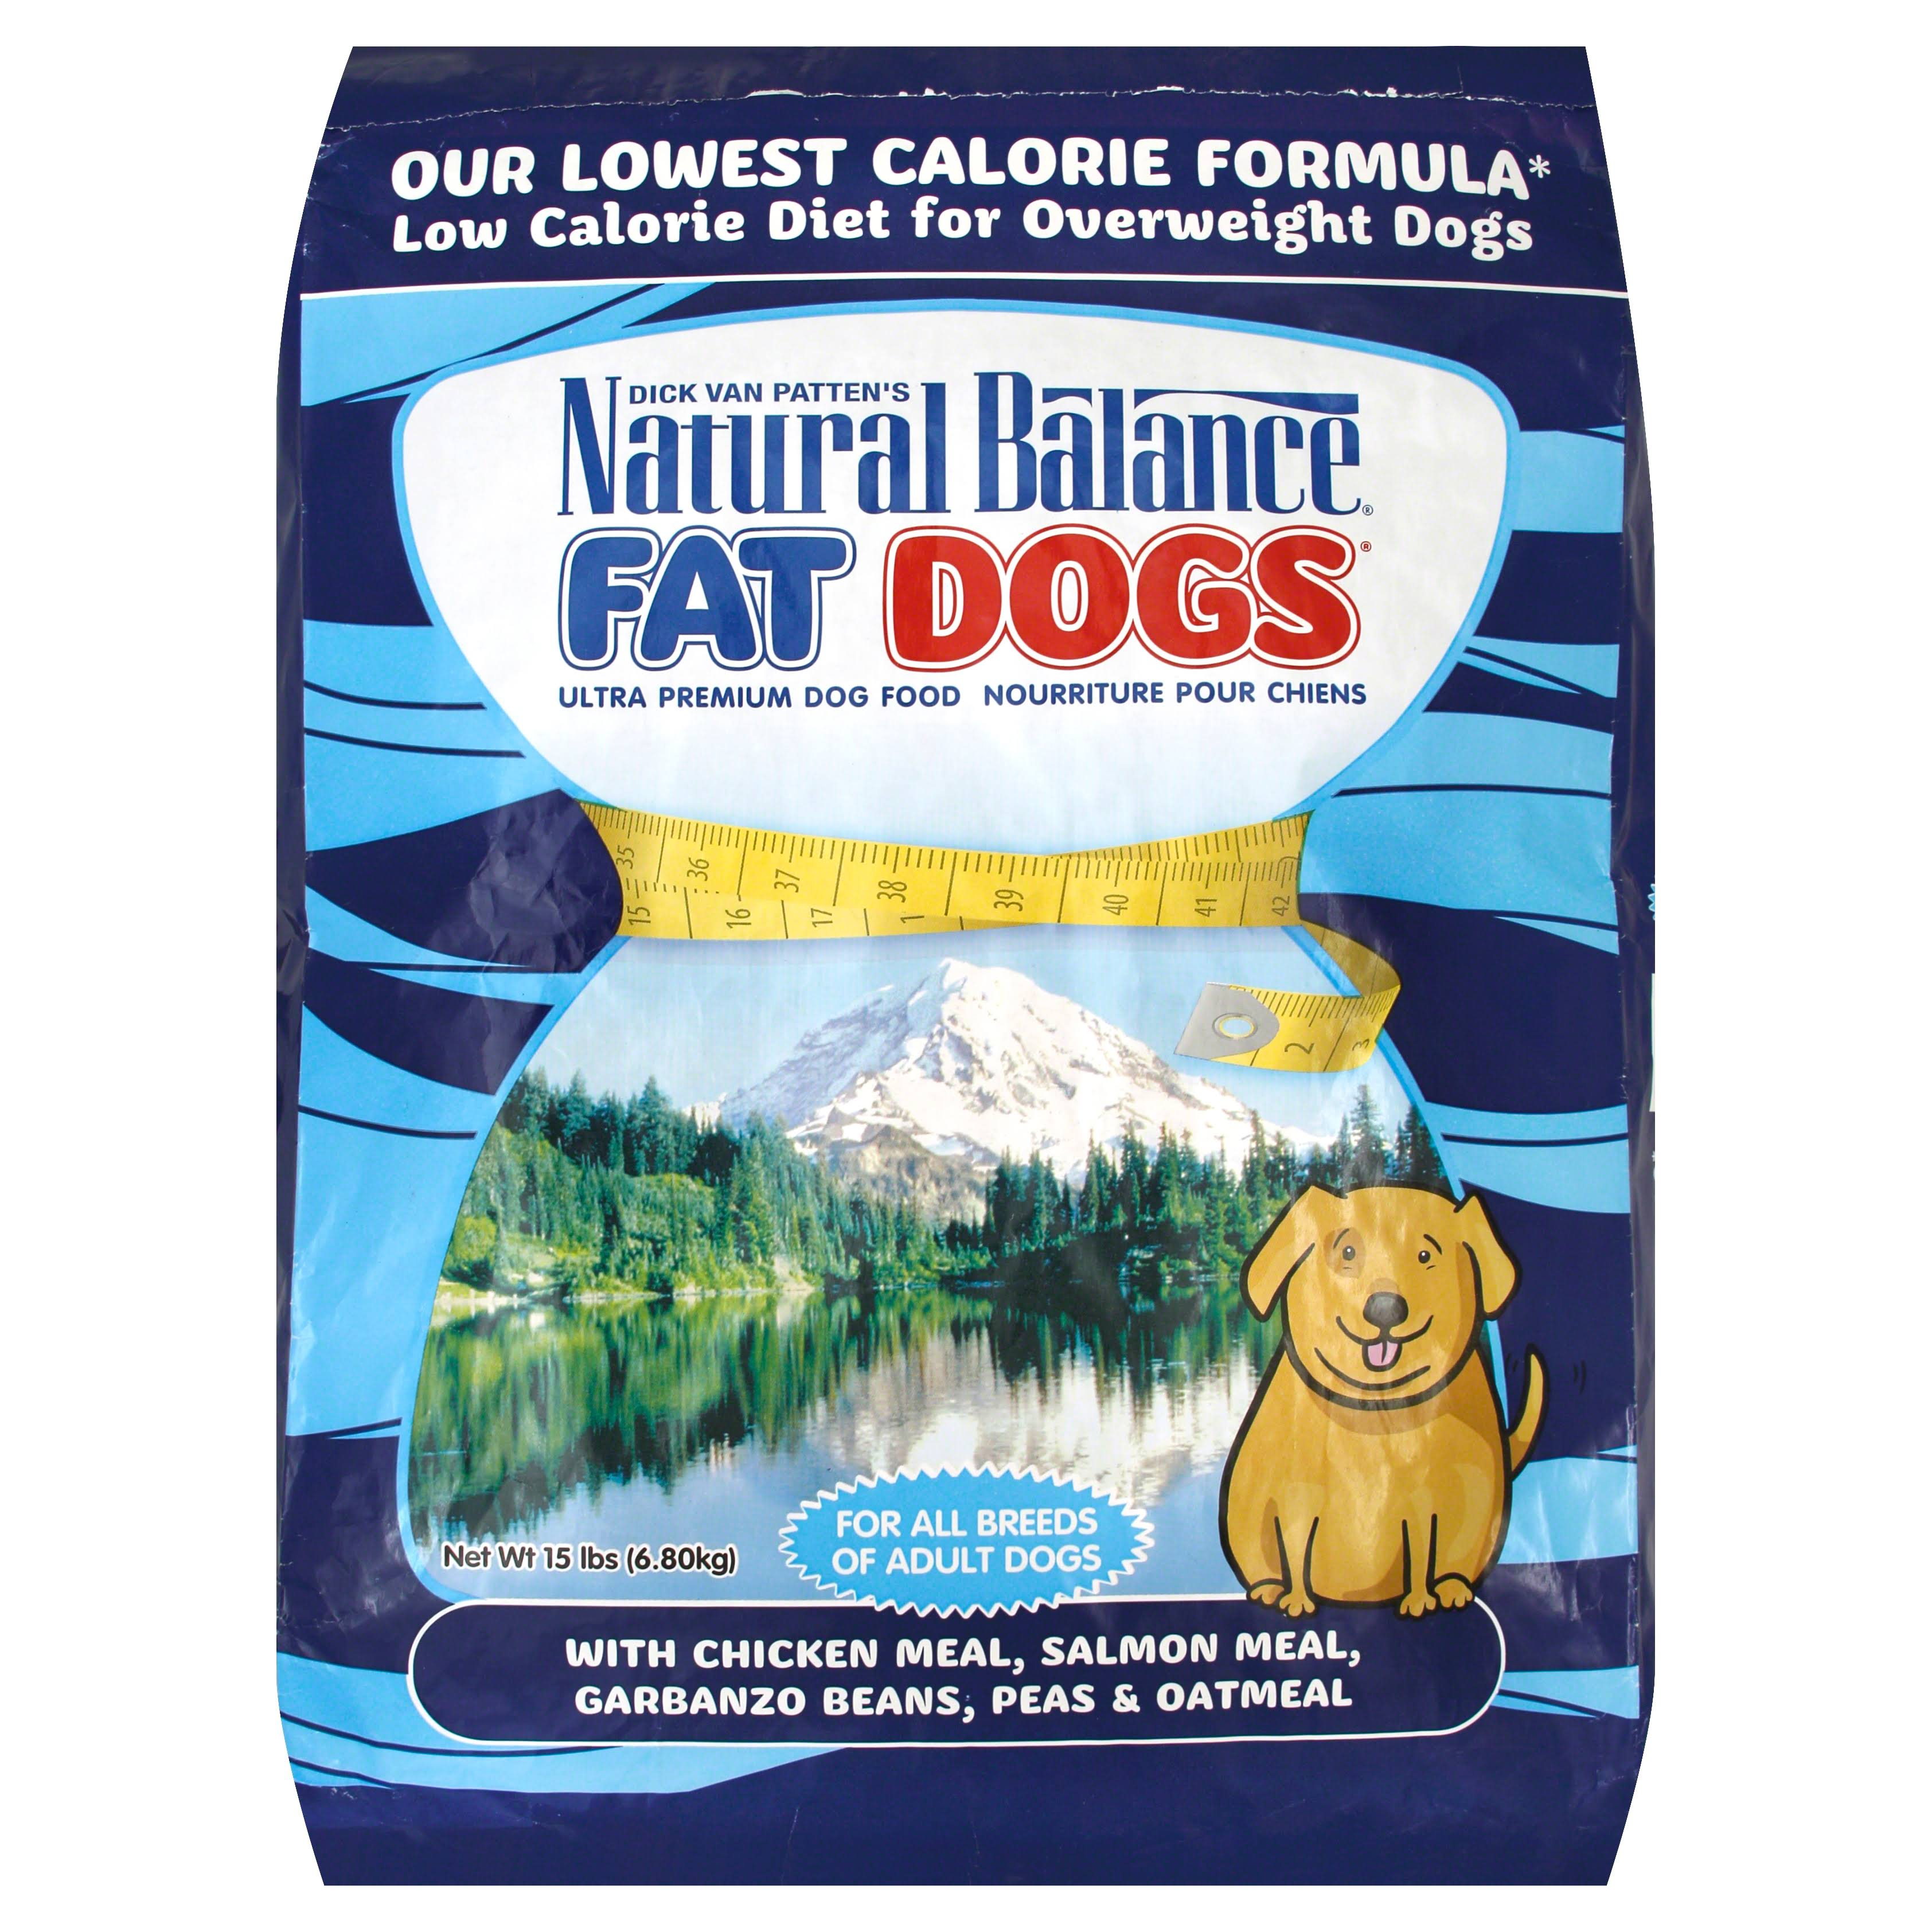 Natural Balance Fat Dogs Chicken and Salmon Formula Low Calorie Dry Dog Food - 15lb